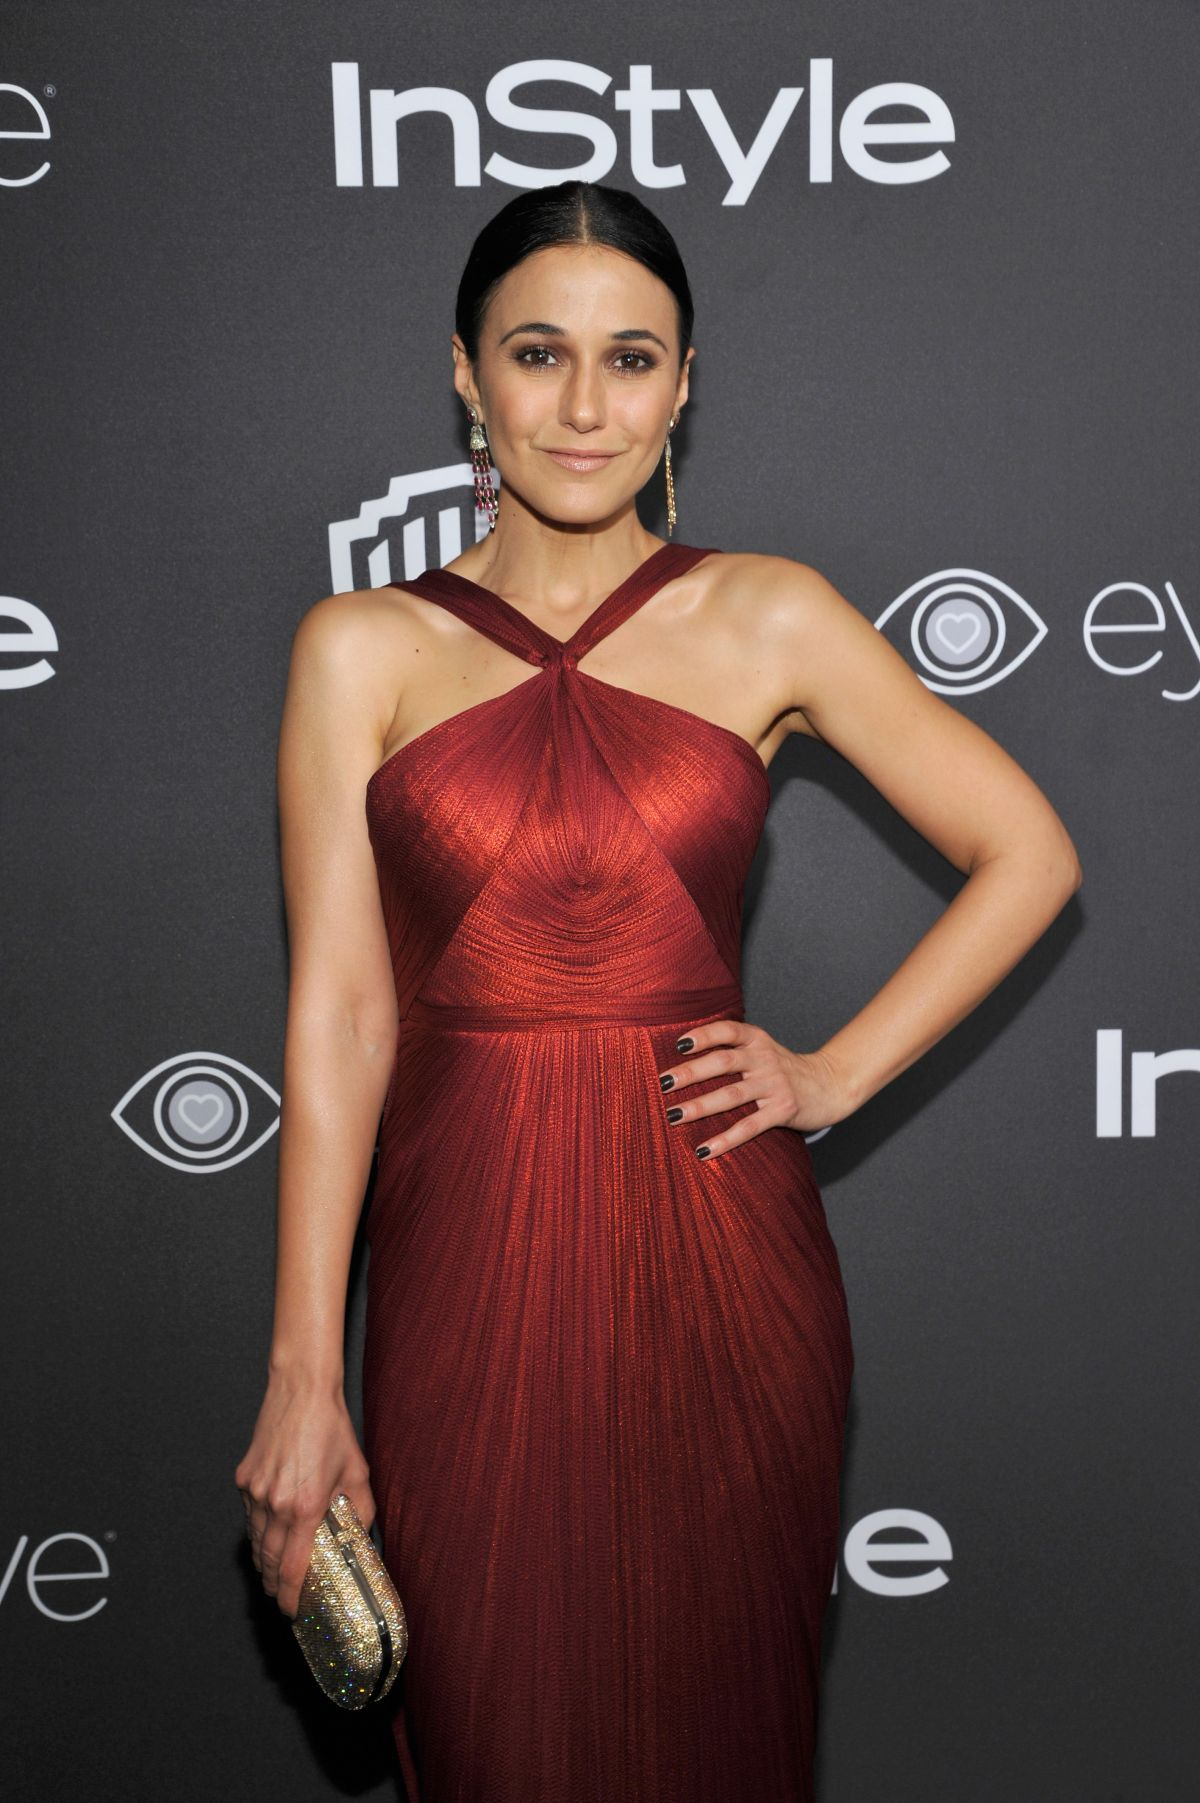 Emmanuelle Chriqui naked (64 pictures) Gallery, Twitter, butt